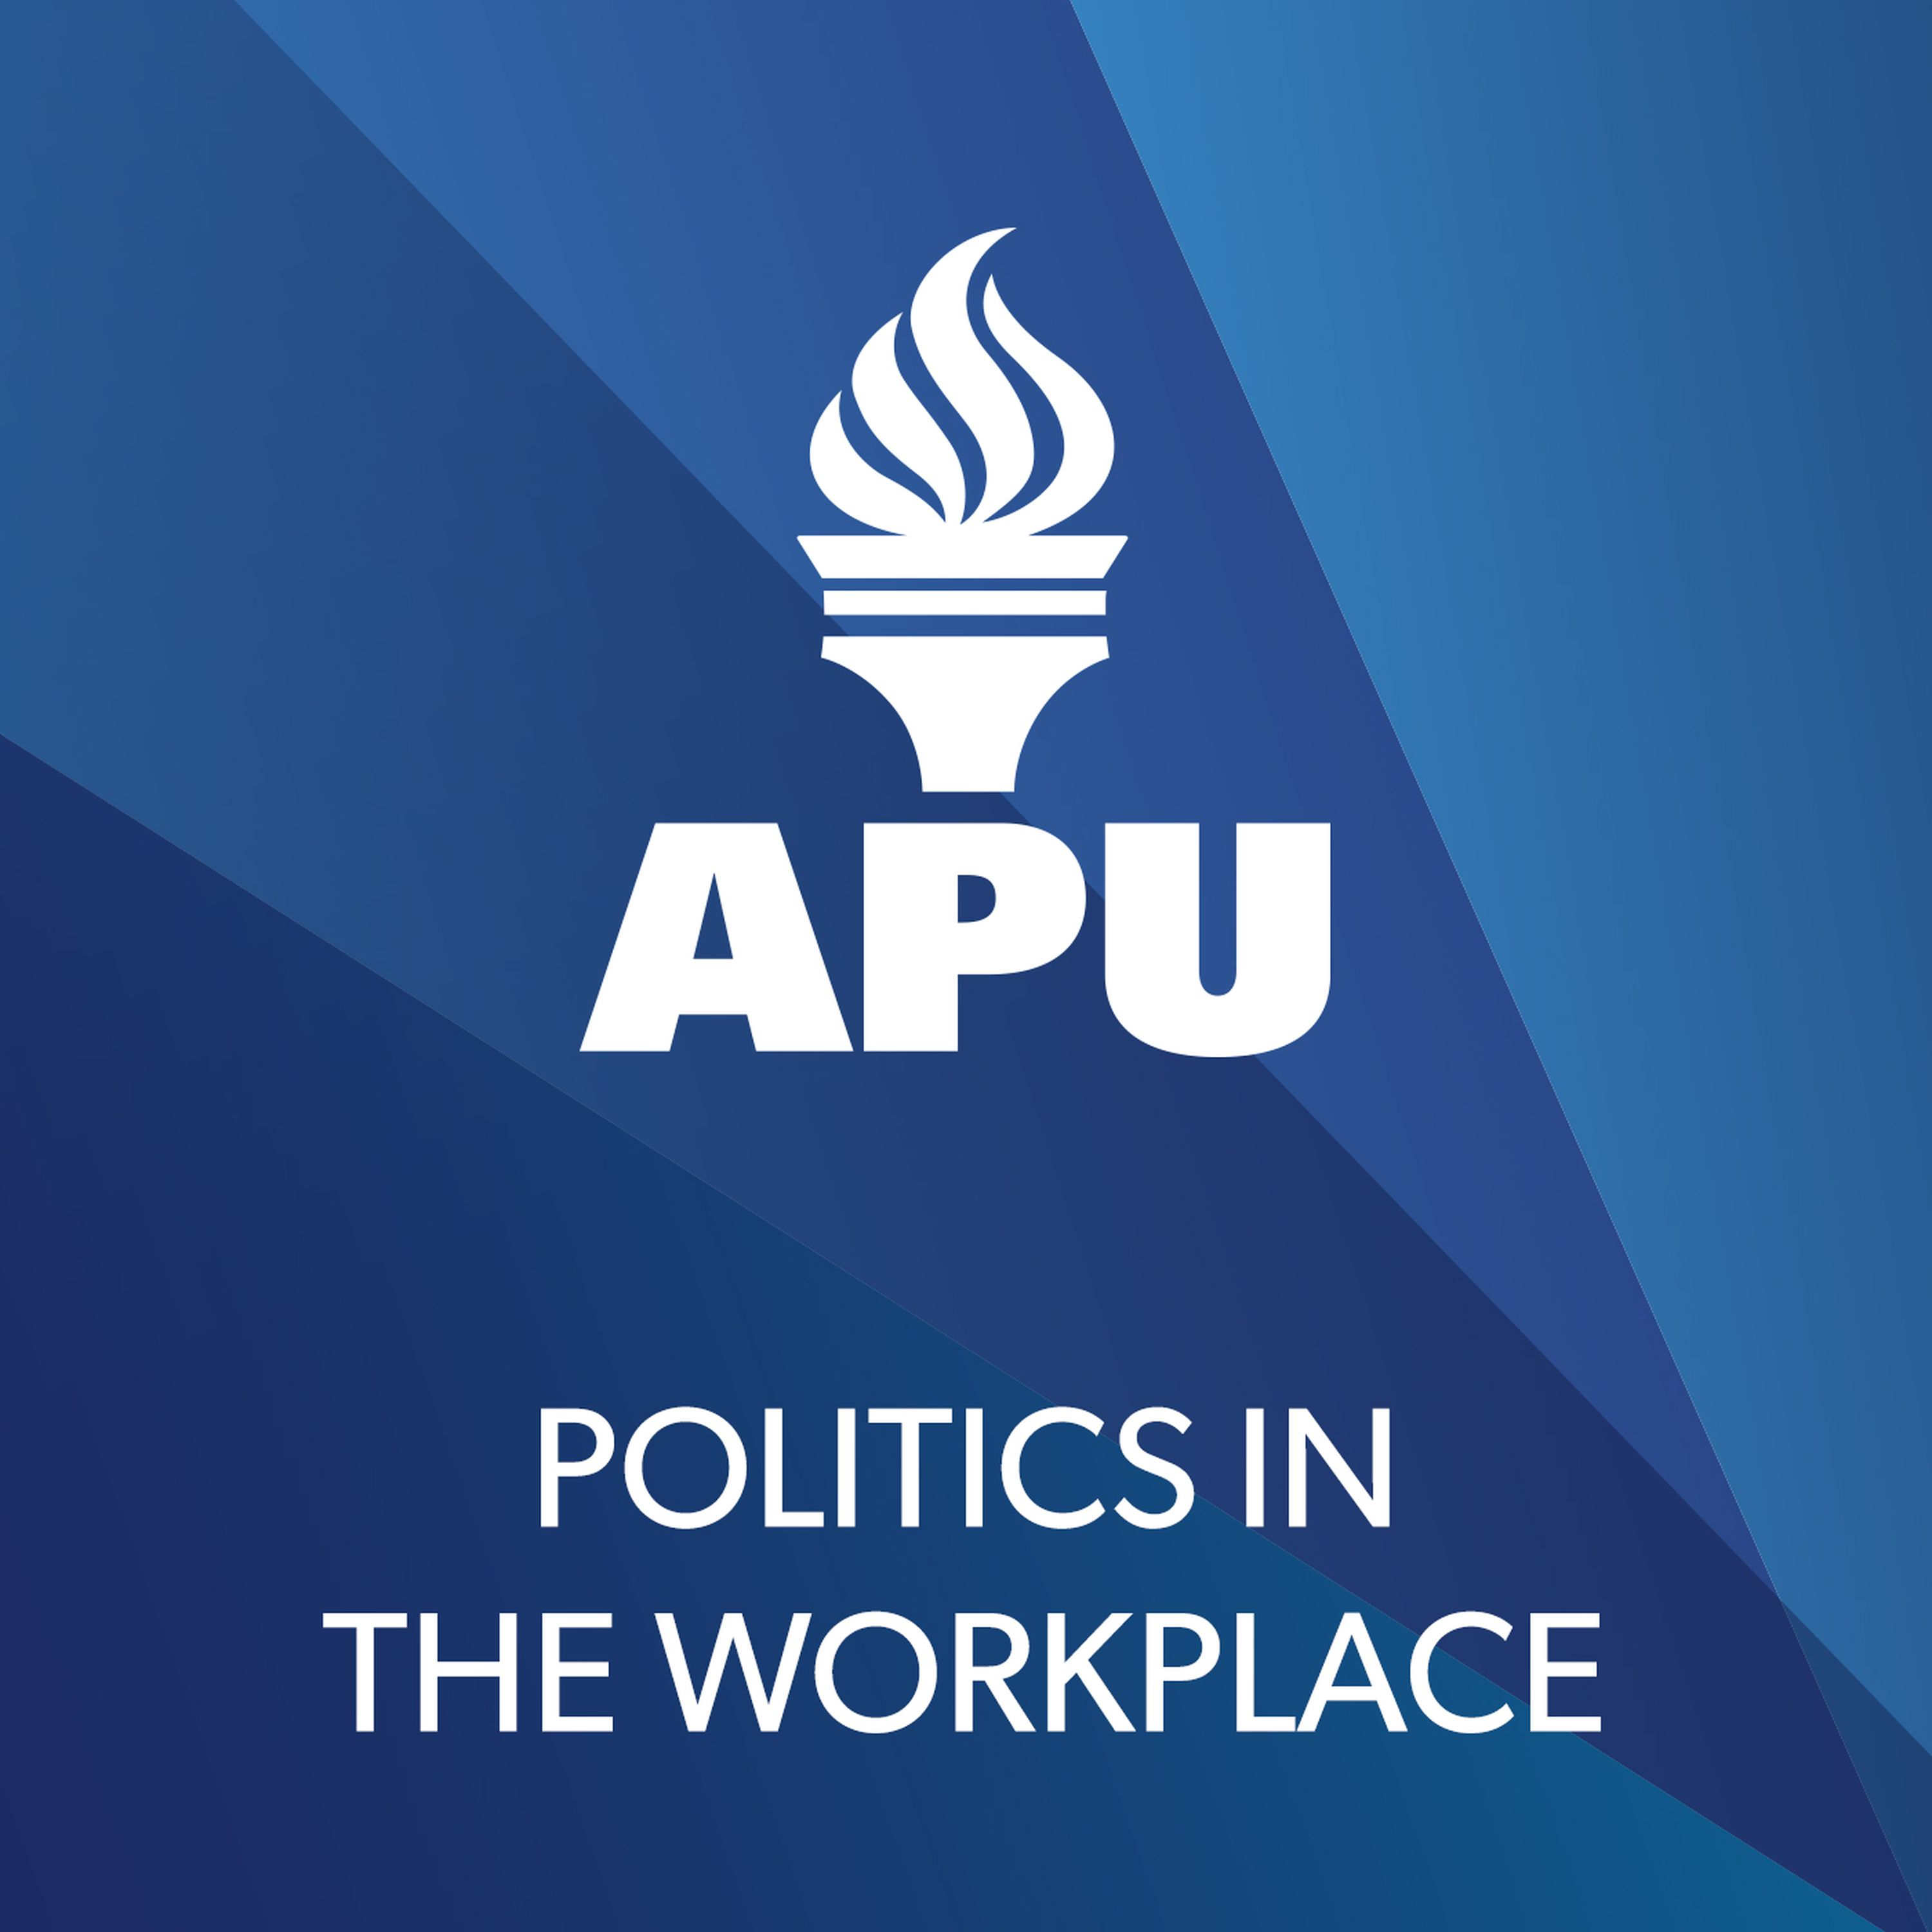 APU Politics in the Workplace Episode 3 - Making Changes in Your Organization Without Fear